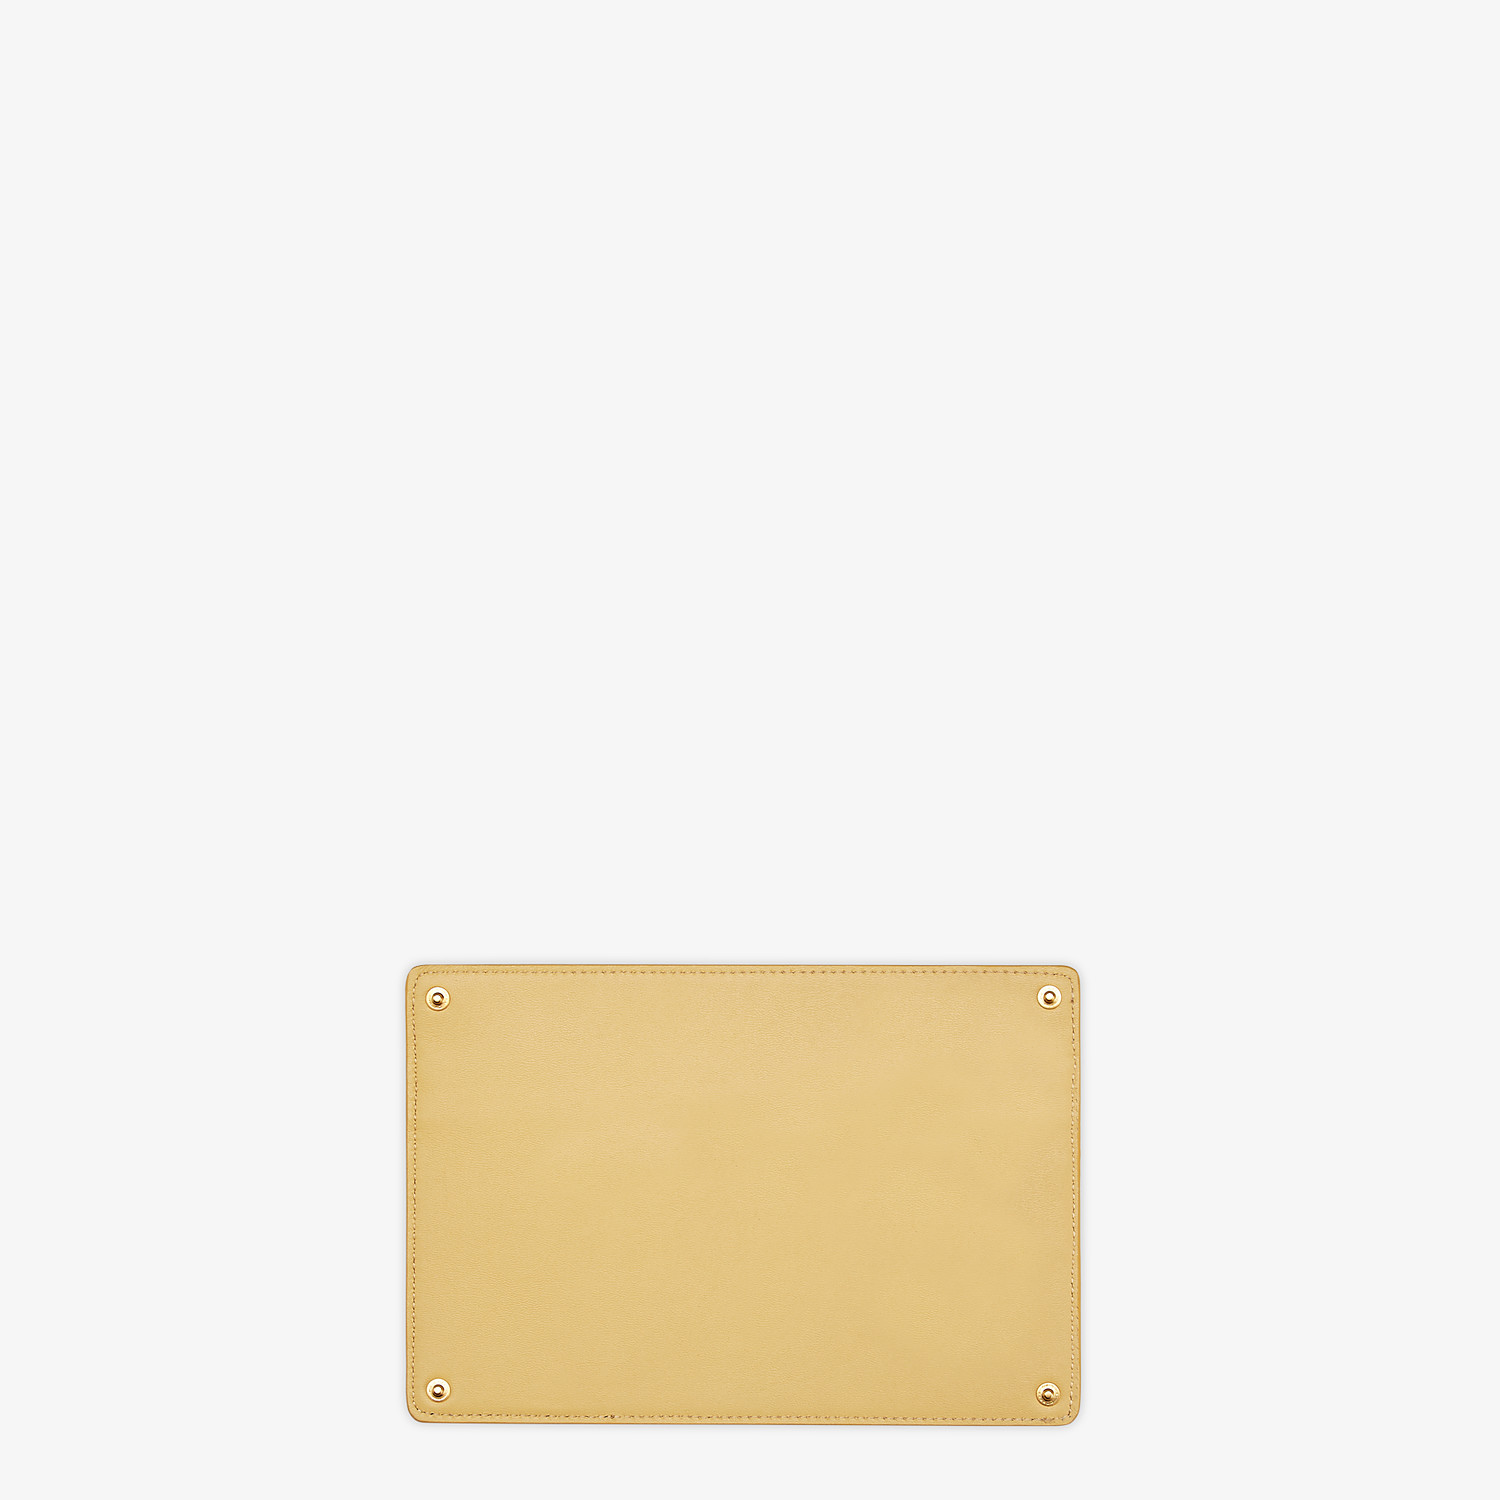 FENDI PEEKABOO ISEEU POCKET - Accessory pocket in yellow leather - view 2 detail